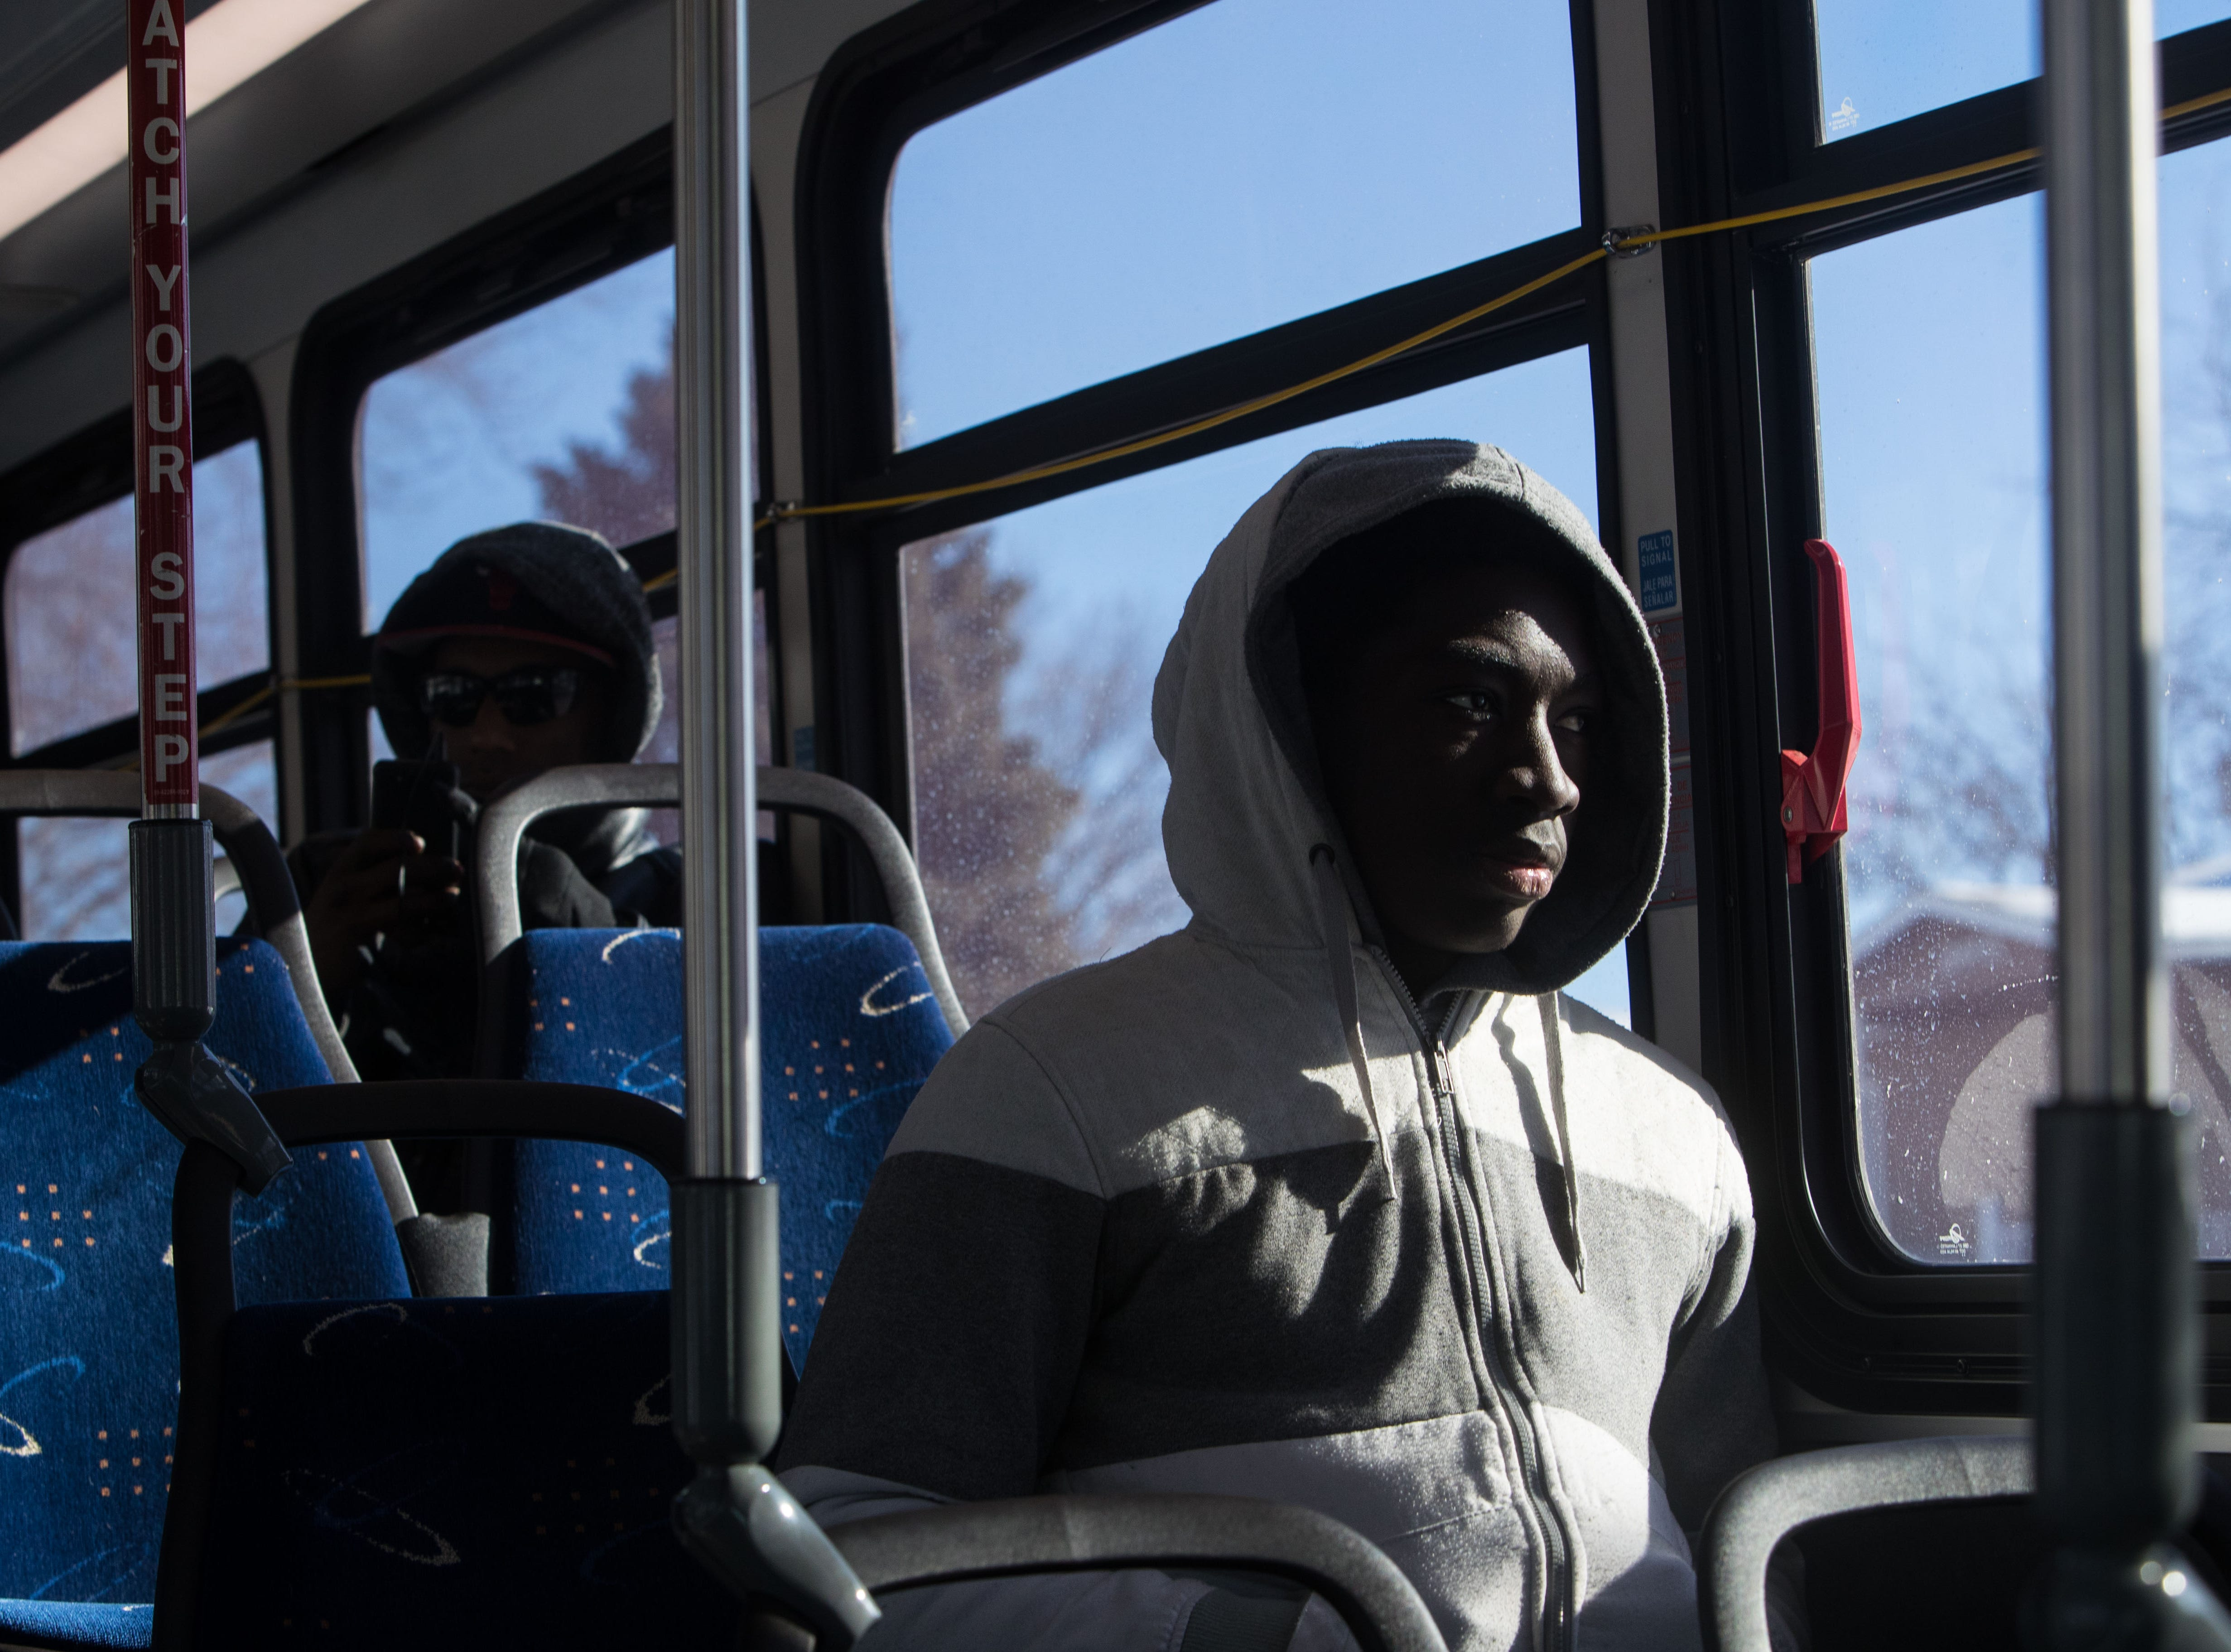 Nelson Freeman, 16, rides the bus in Sioux Falls, S.D., Wednesday, Jan. 30, 2019.